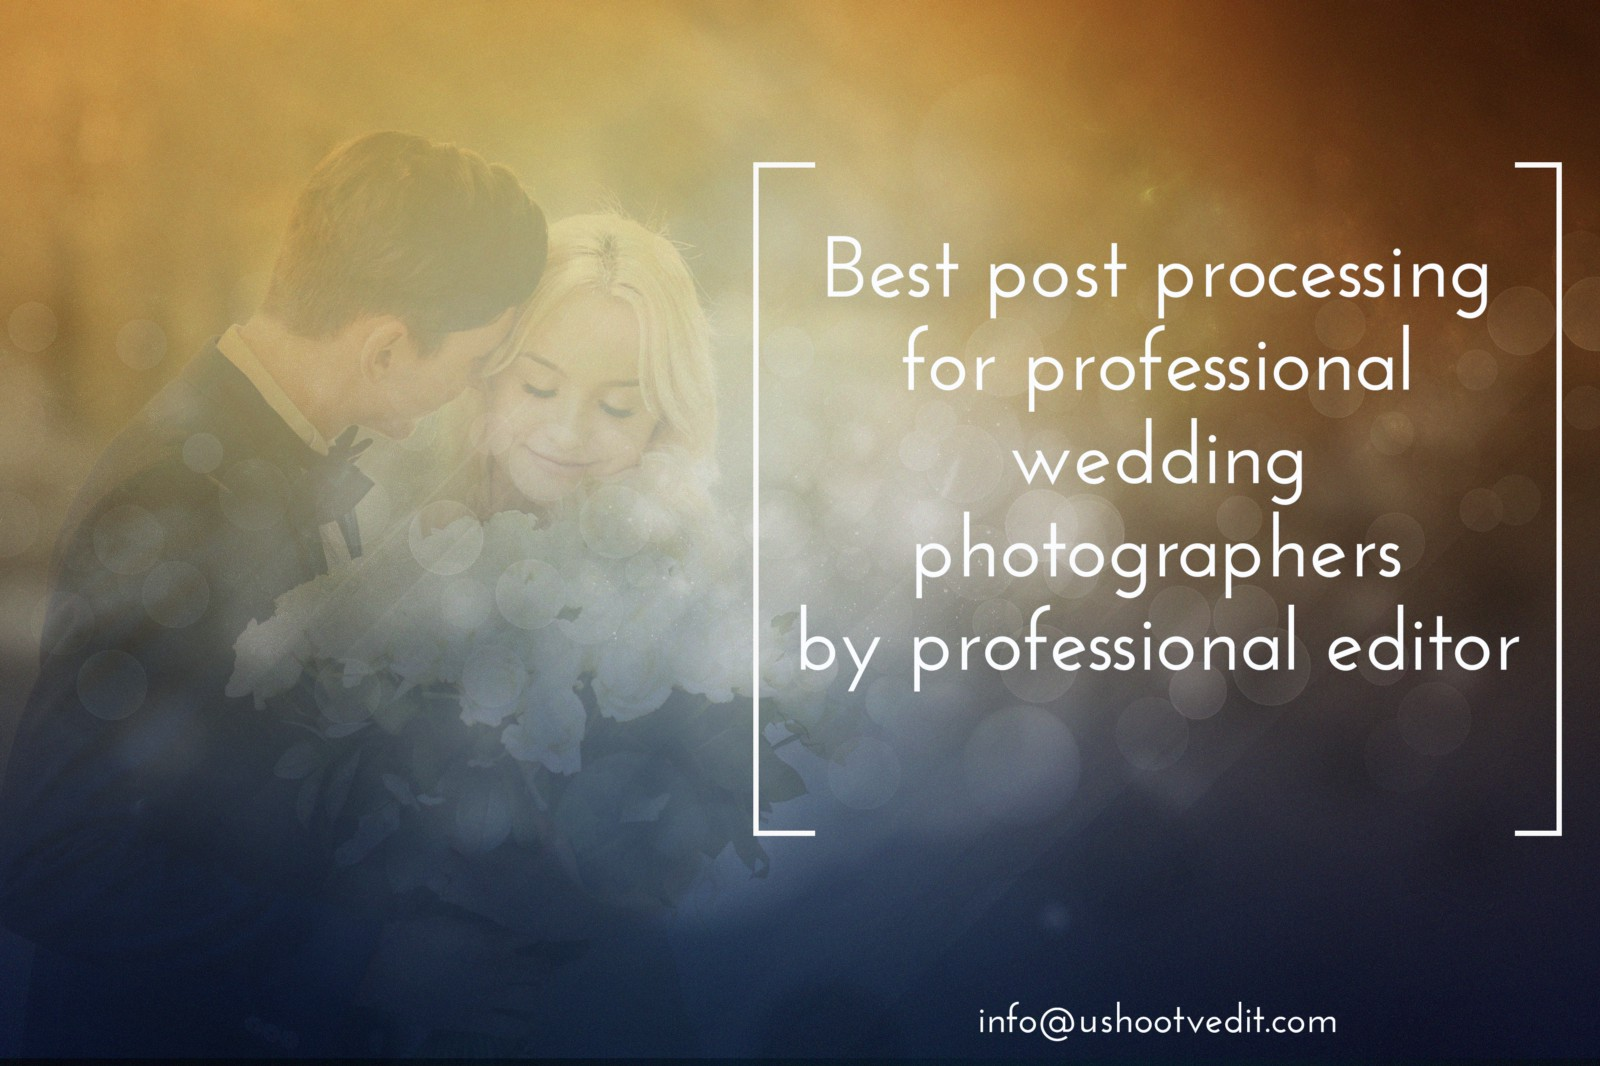 Everything From Basic Photo Culling Services To Advanced Photography Editing Whether You Are A Wedding Photographer Or Commercial